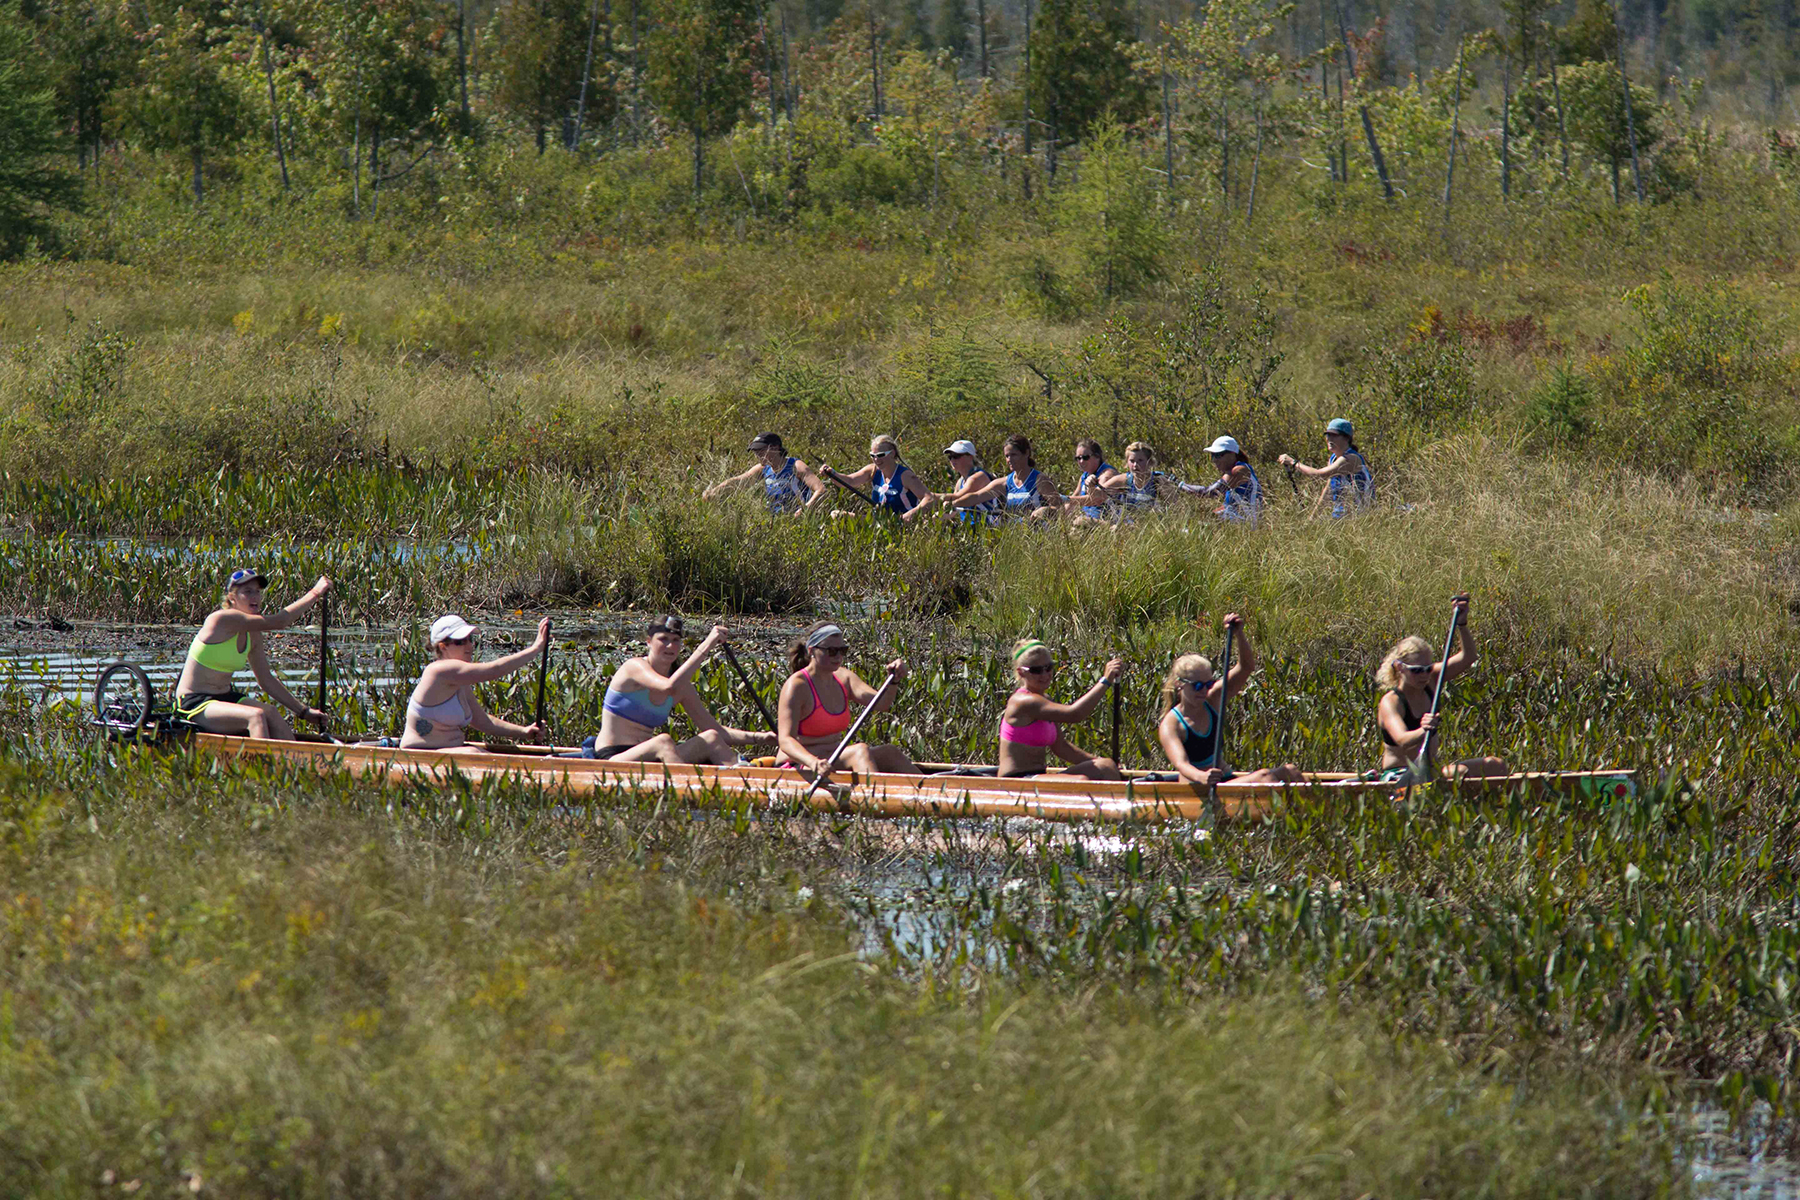 Paddlers race in the 3-day, 90-mile Adirondack Canoe Classic from Old Forge to Saranac Lake in New York state on Friday, September 11.